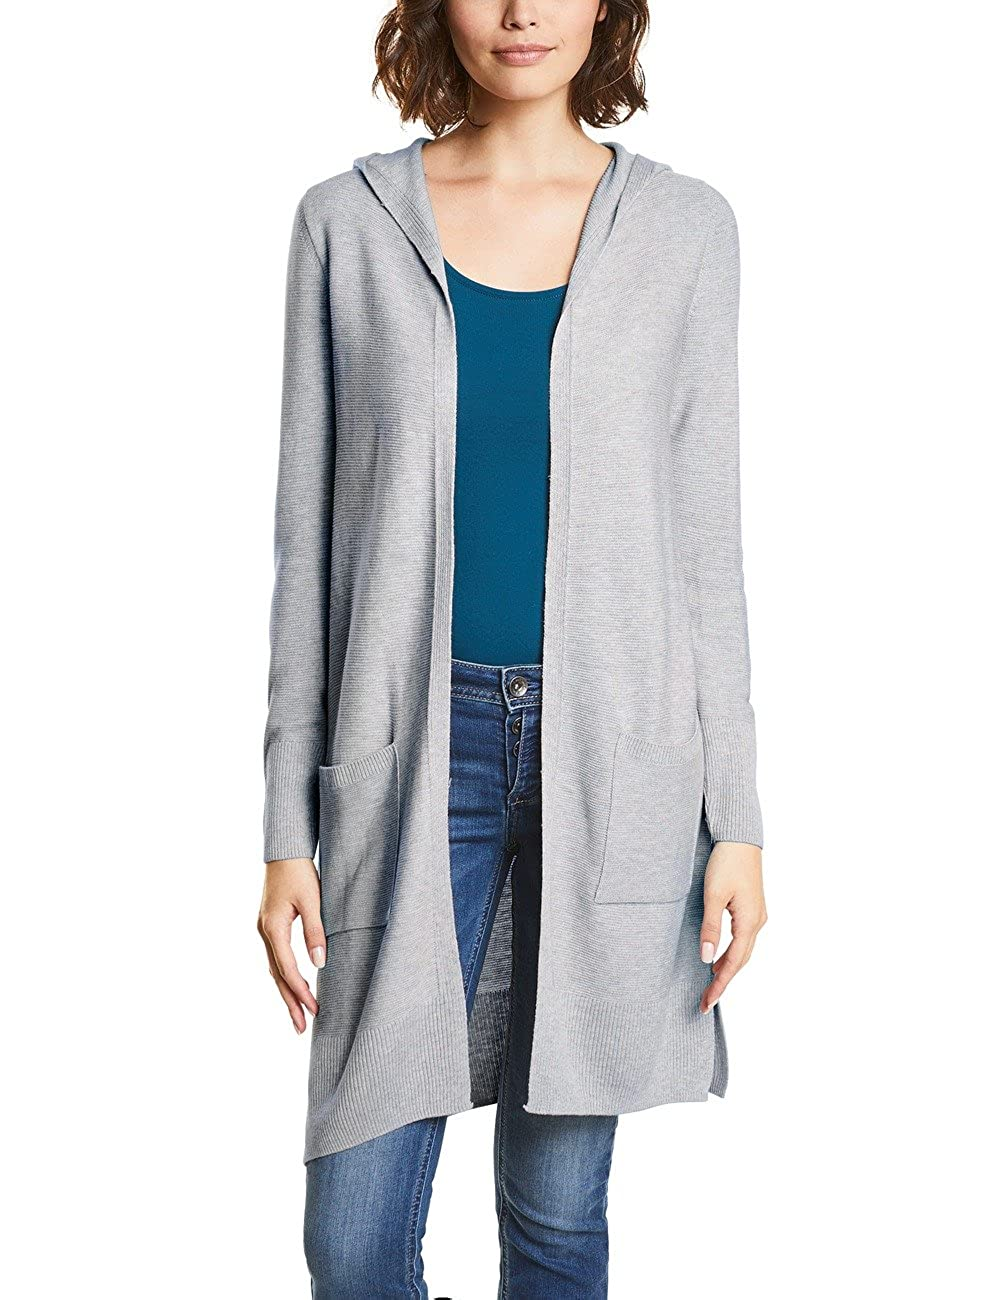 Street One Damen Strickjacke